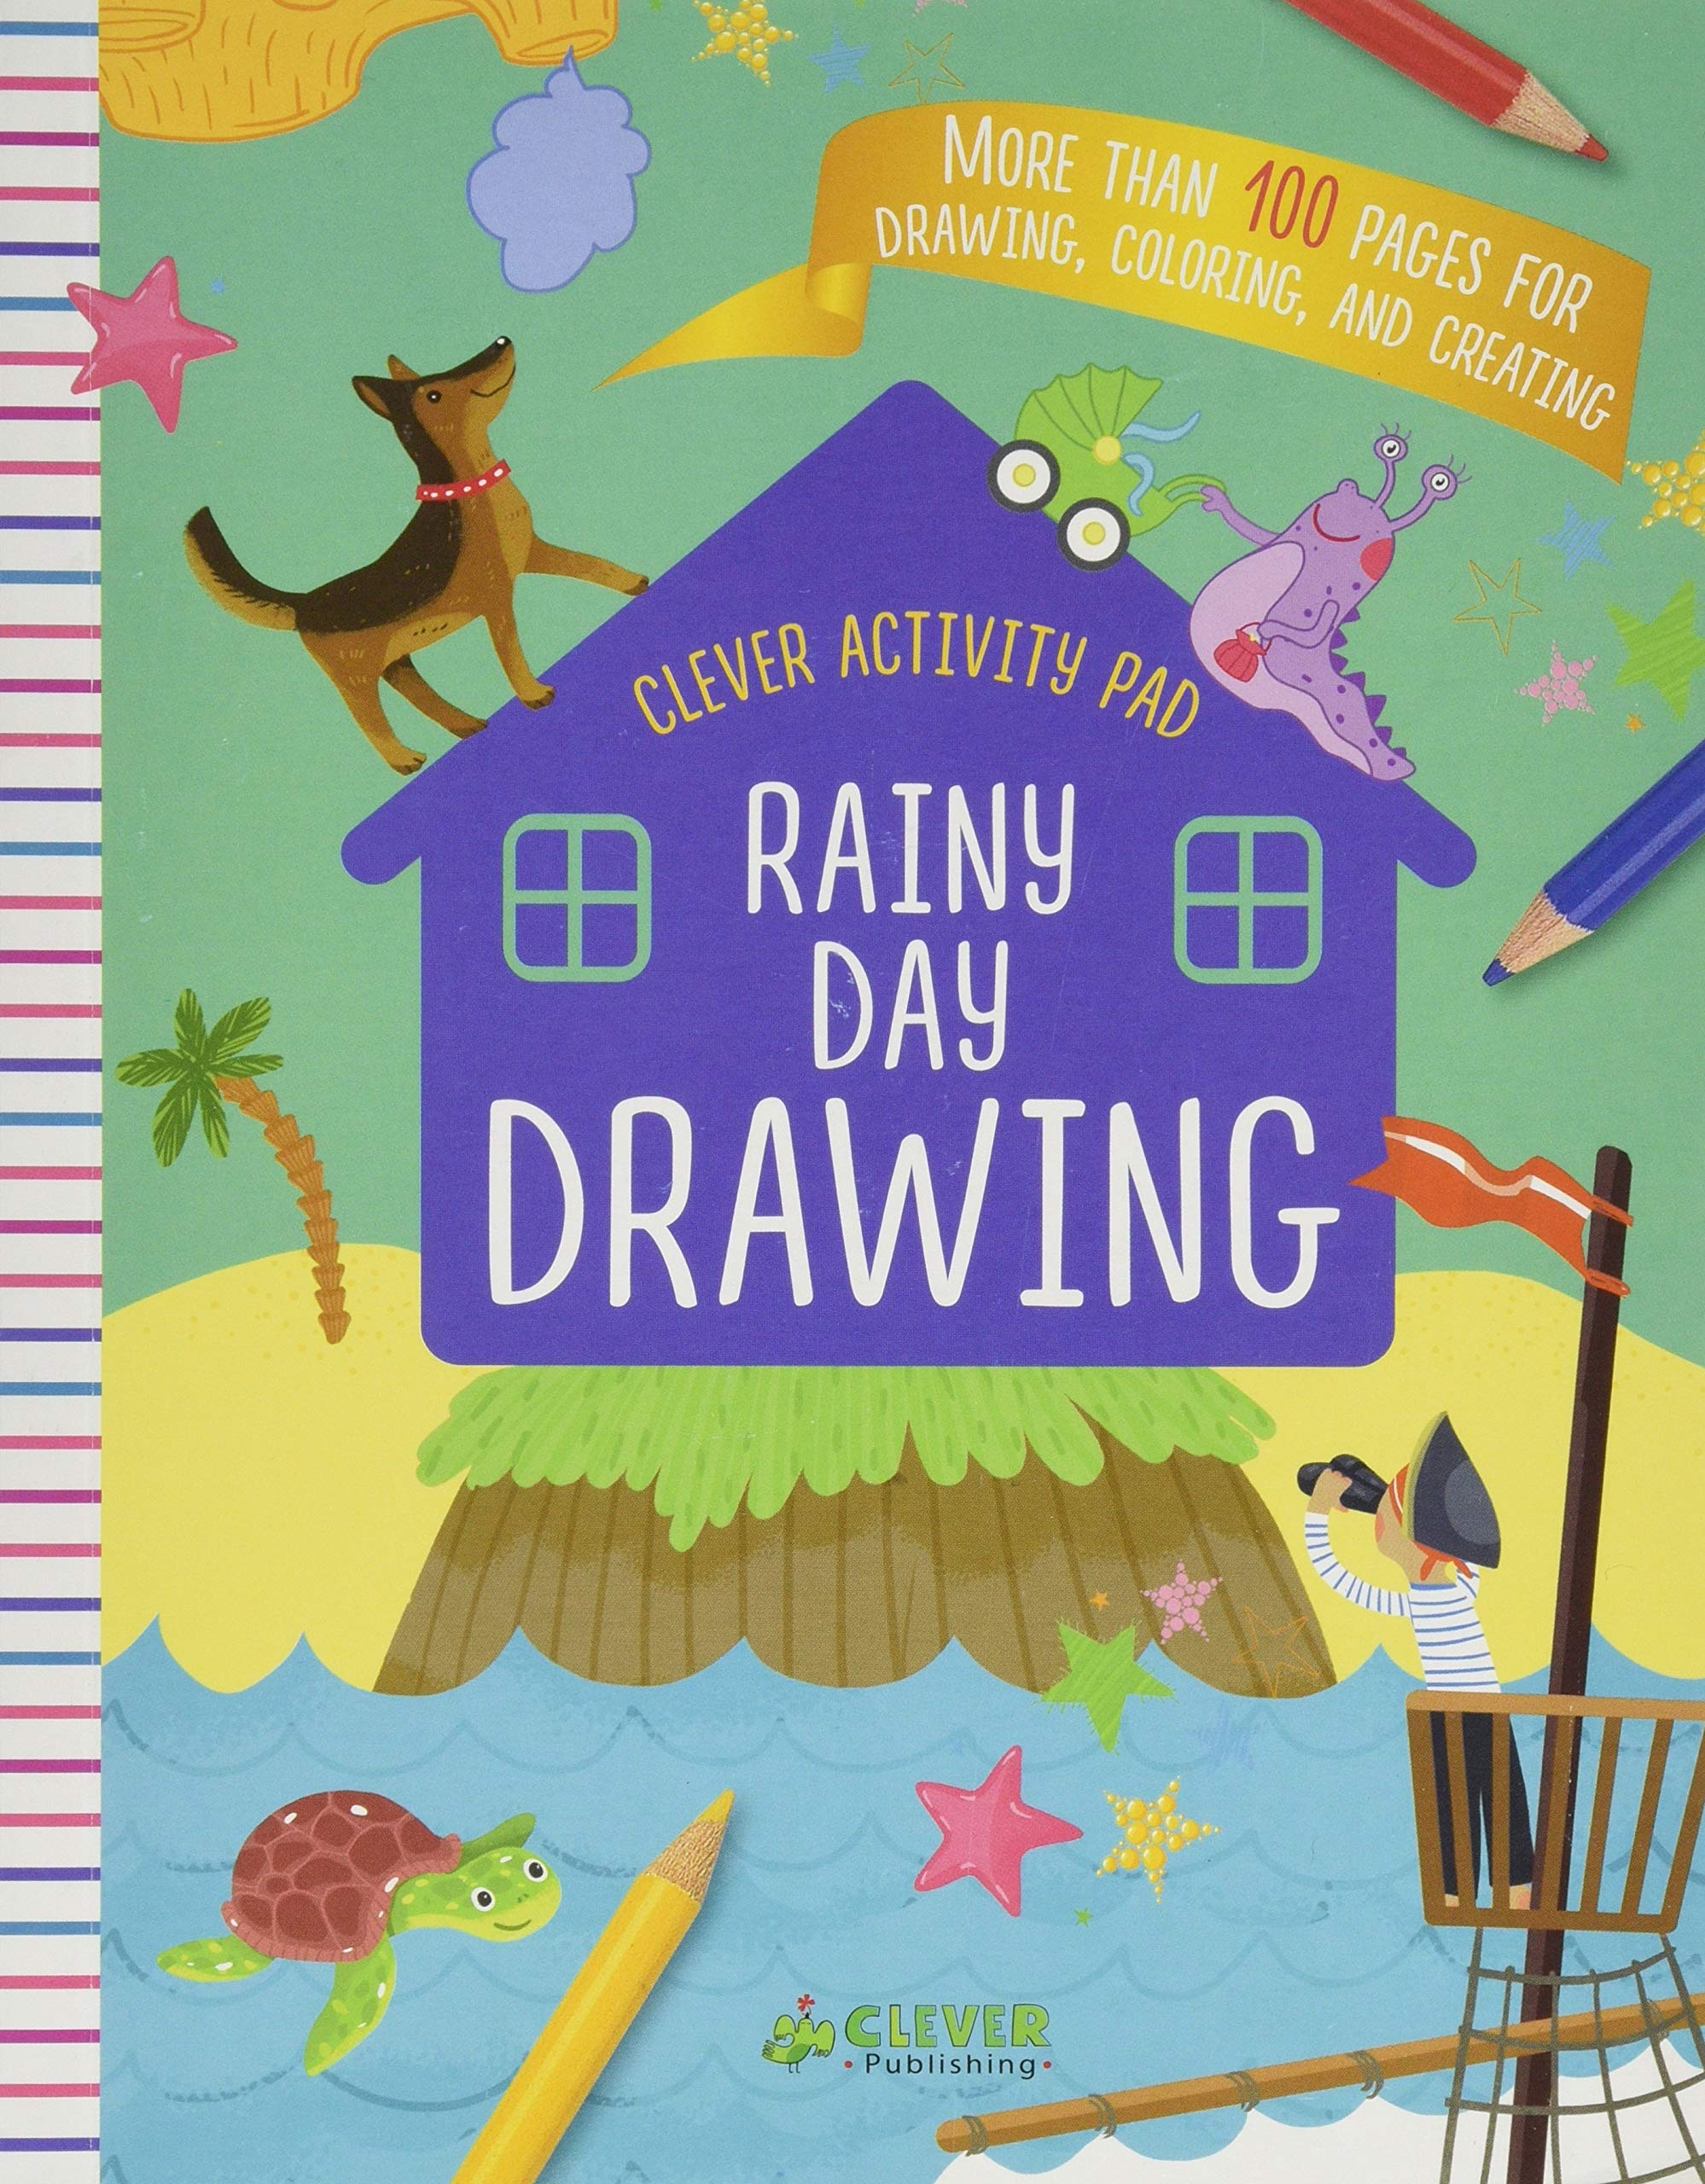 Rainy Day Drawing More Than 100 Pages For Drawing Coloring And Creating Clever Activity Pad Clever Publishing Danilova Lida 9781948418034 Amazon Com Books